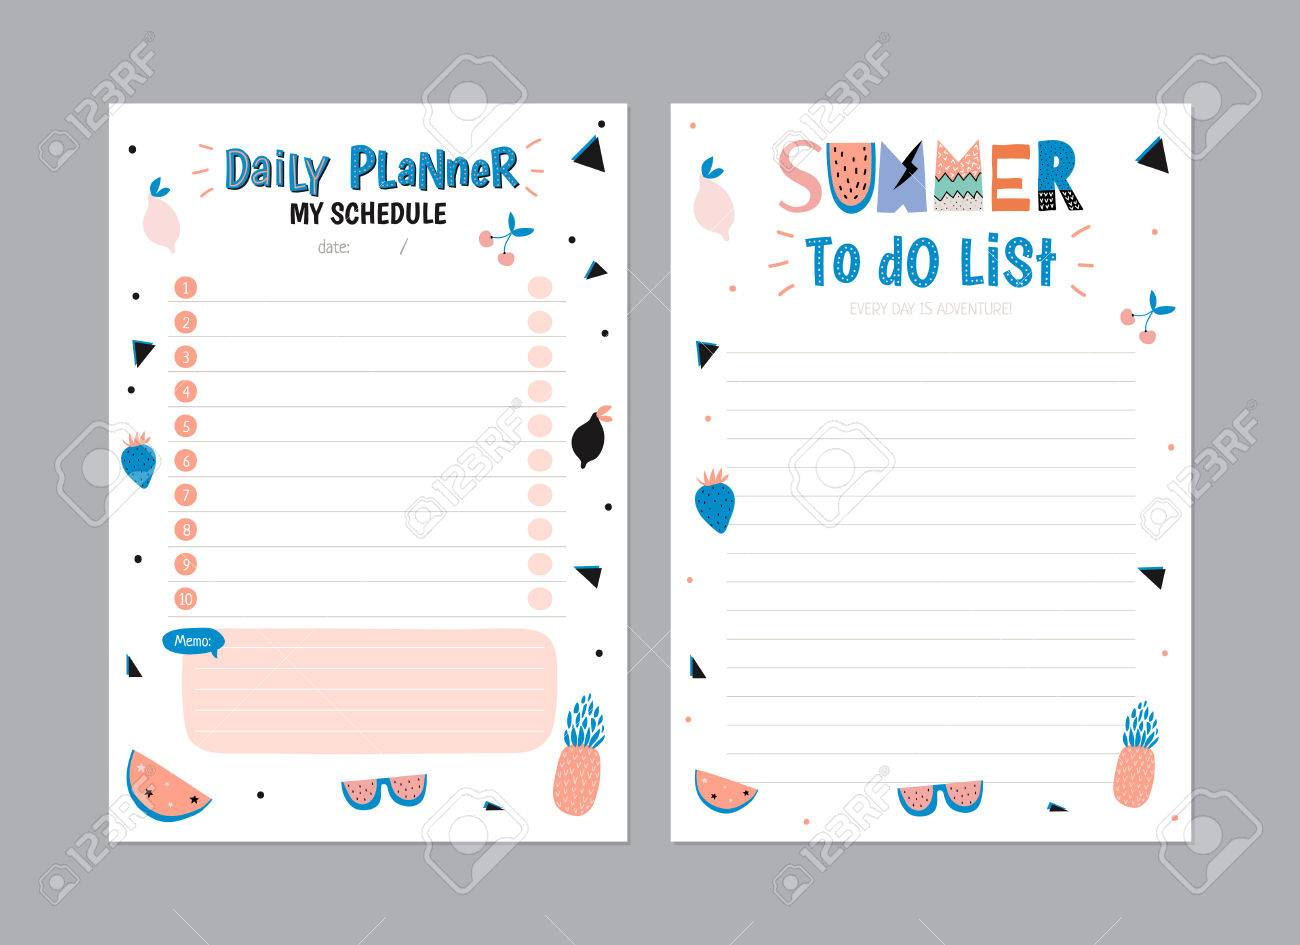 Scandinavian Weekly And Daily Planner Template Organizer And - Daily organizer template